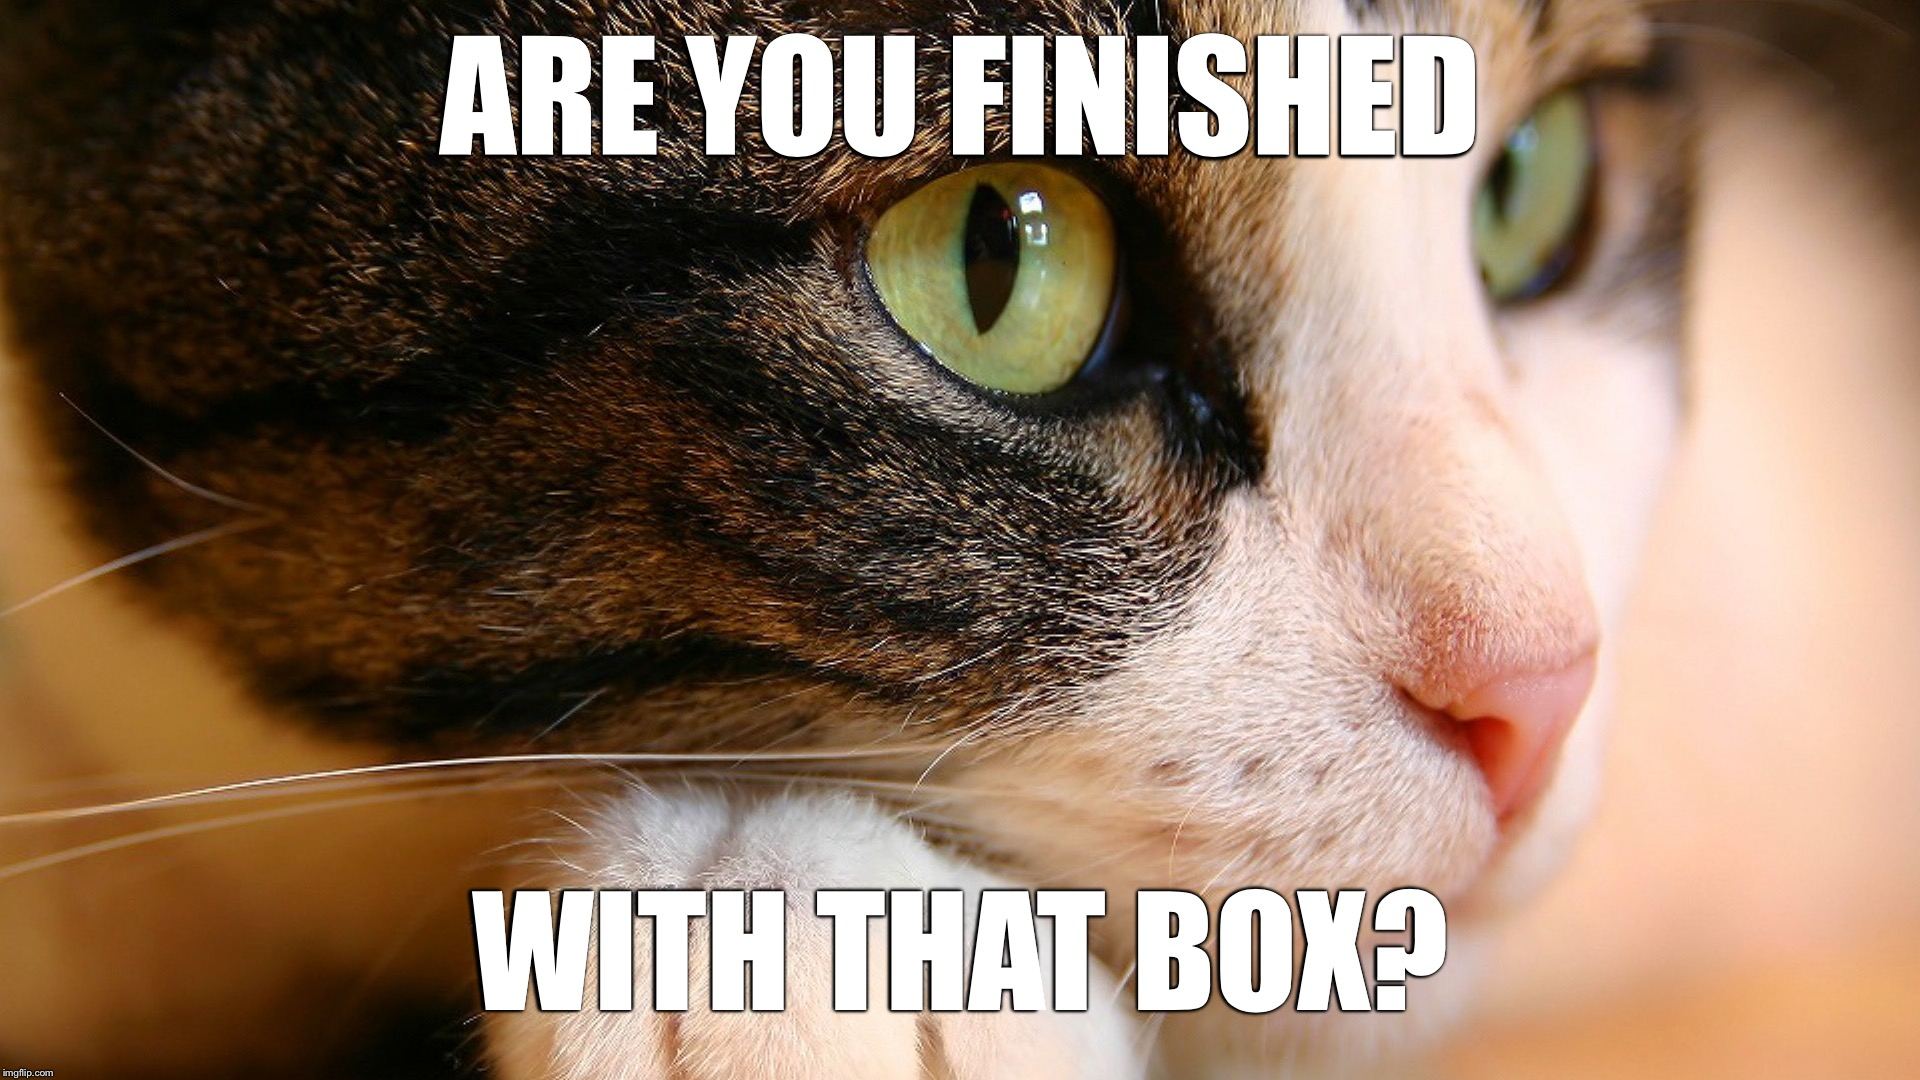 ARE YOU FINISHED WITH THAT BOX? | image tagged in memes,hd meme,cat,box | made w/ Imgflip meme maker